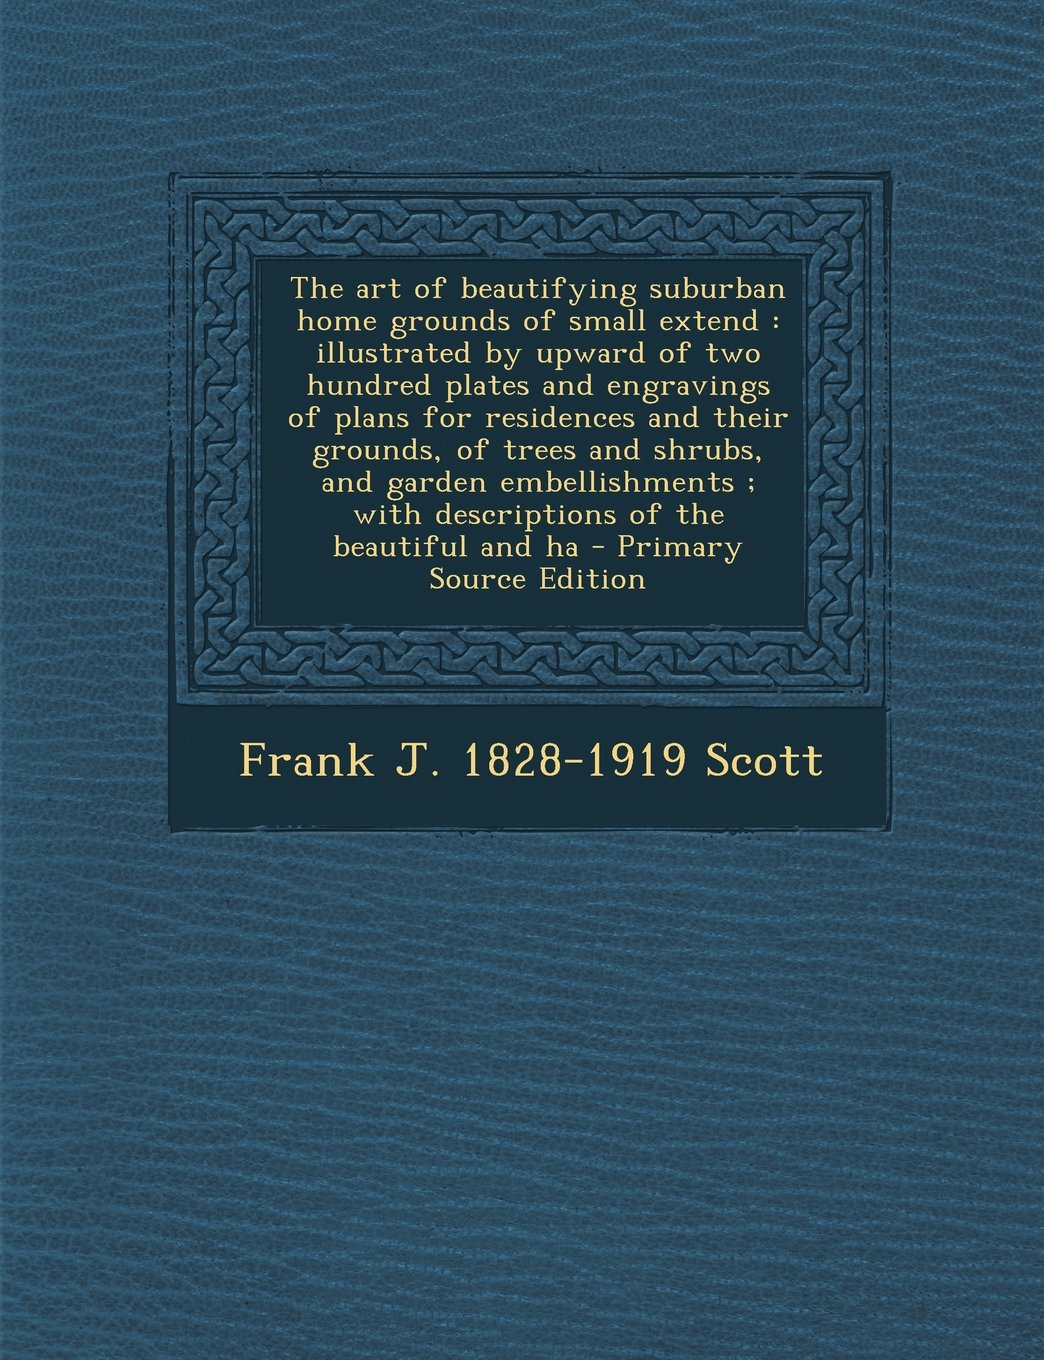 Download The Art of Beautifying Suburban Home Grounds of Small Extend: Illustrated by Upward of Two Hundred Plates and Engravings of Plans for Residences and T pdf